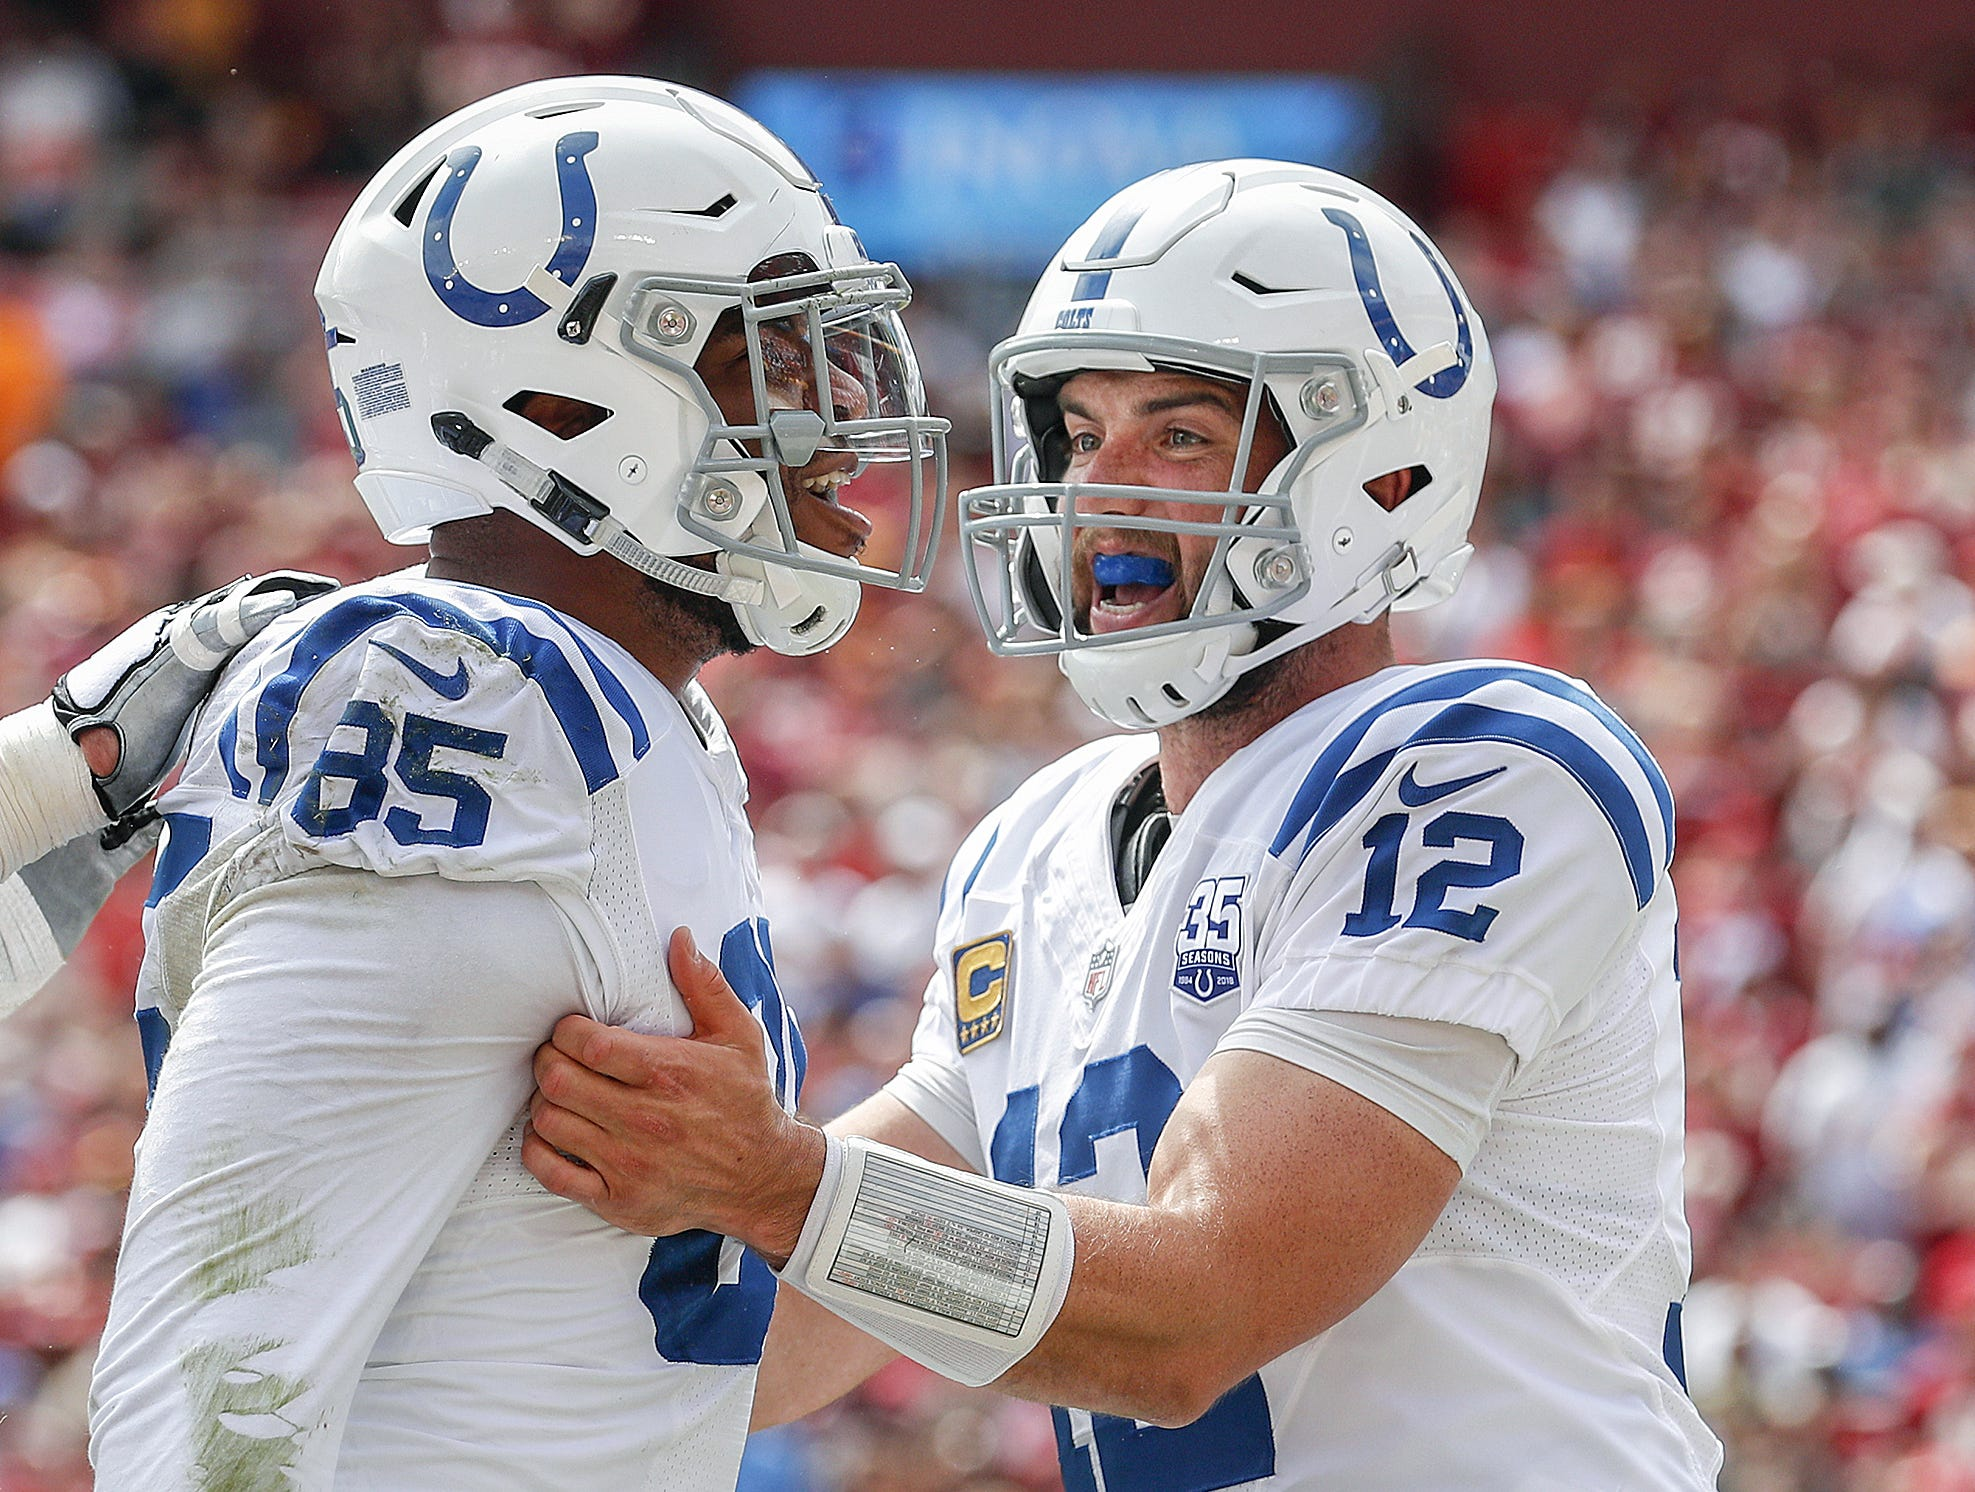 Indianapolis Colts tight end Eric Ebron (85) and quarterback Andrew Luck (12) react to scoring on the team's opening possession of the game. The Indianapolis Colts play the Washington Redskins at FedEx Field in Landover, MD., Sunday, Sept. 16, 2018.